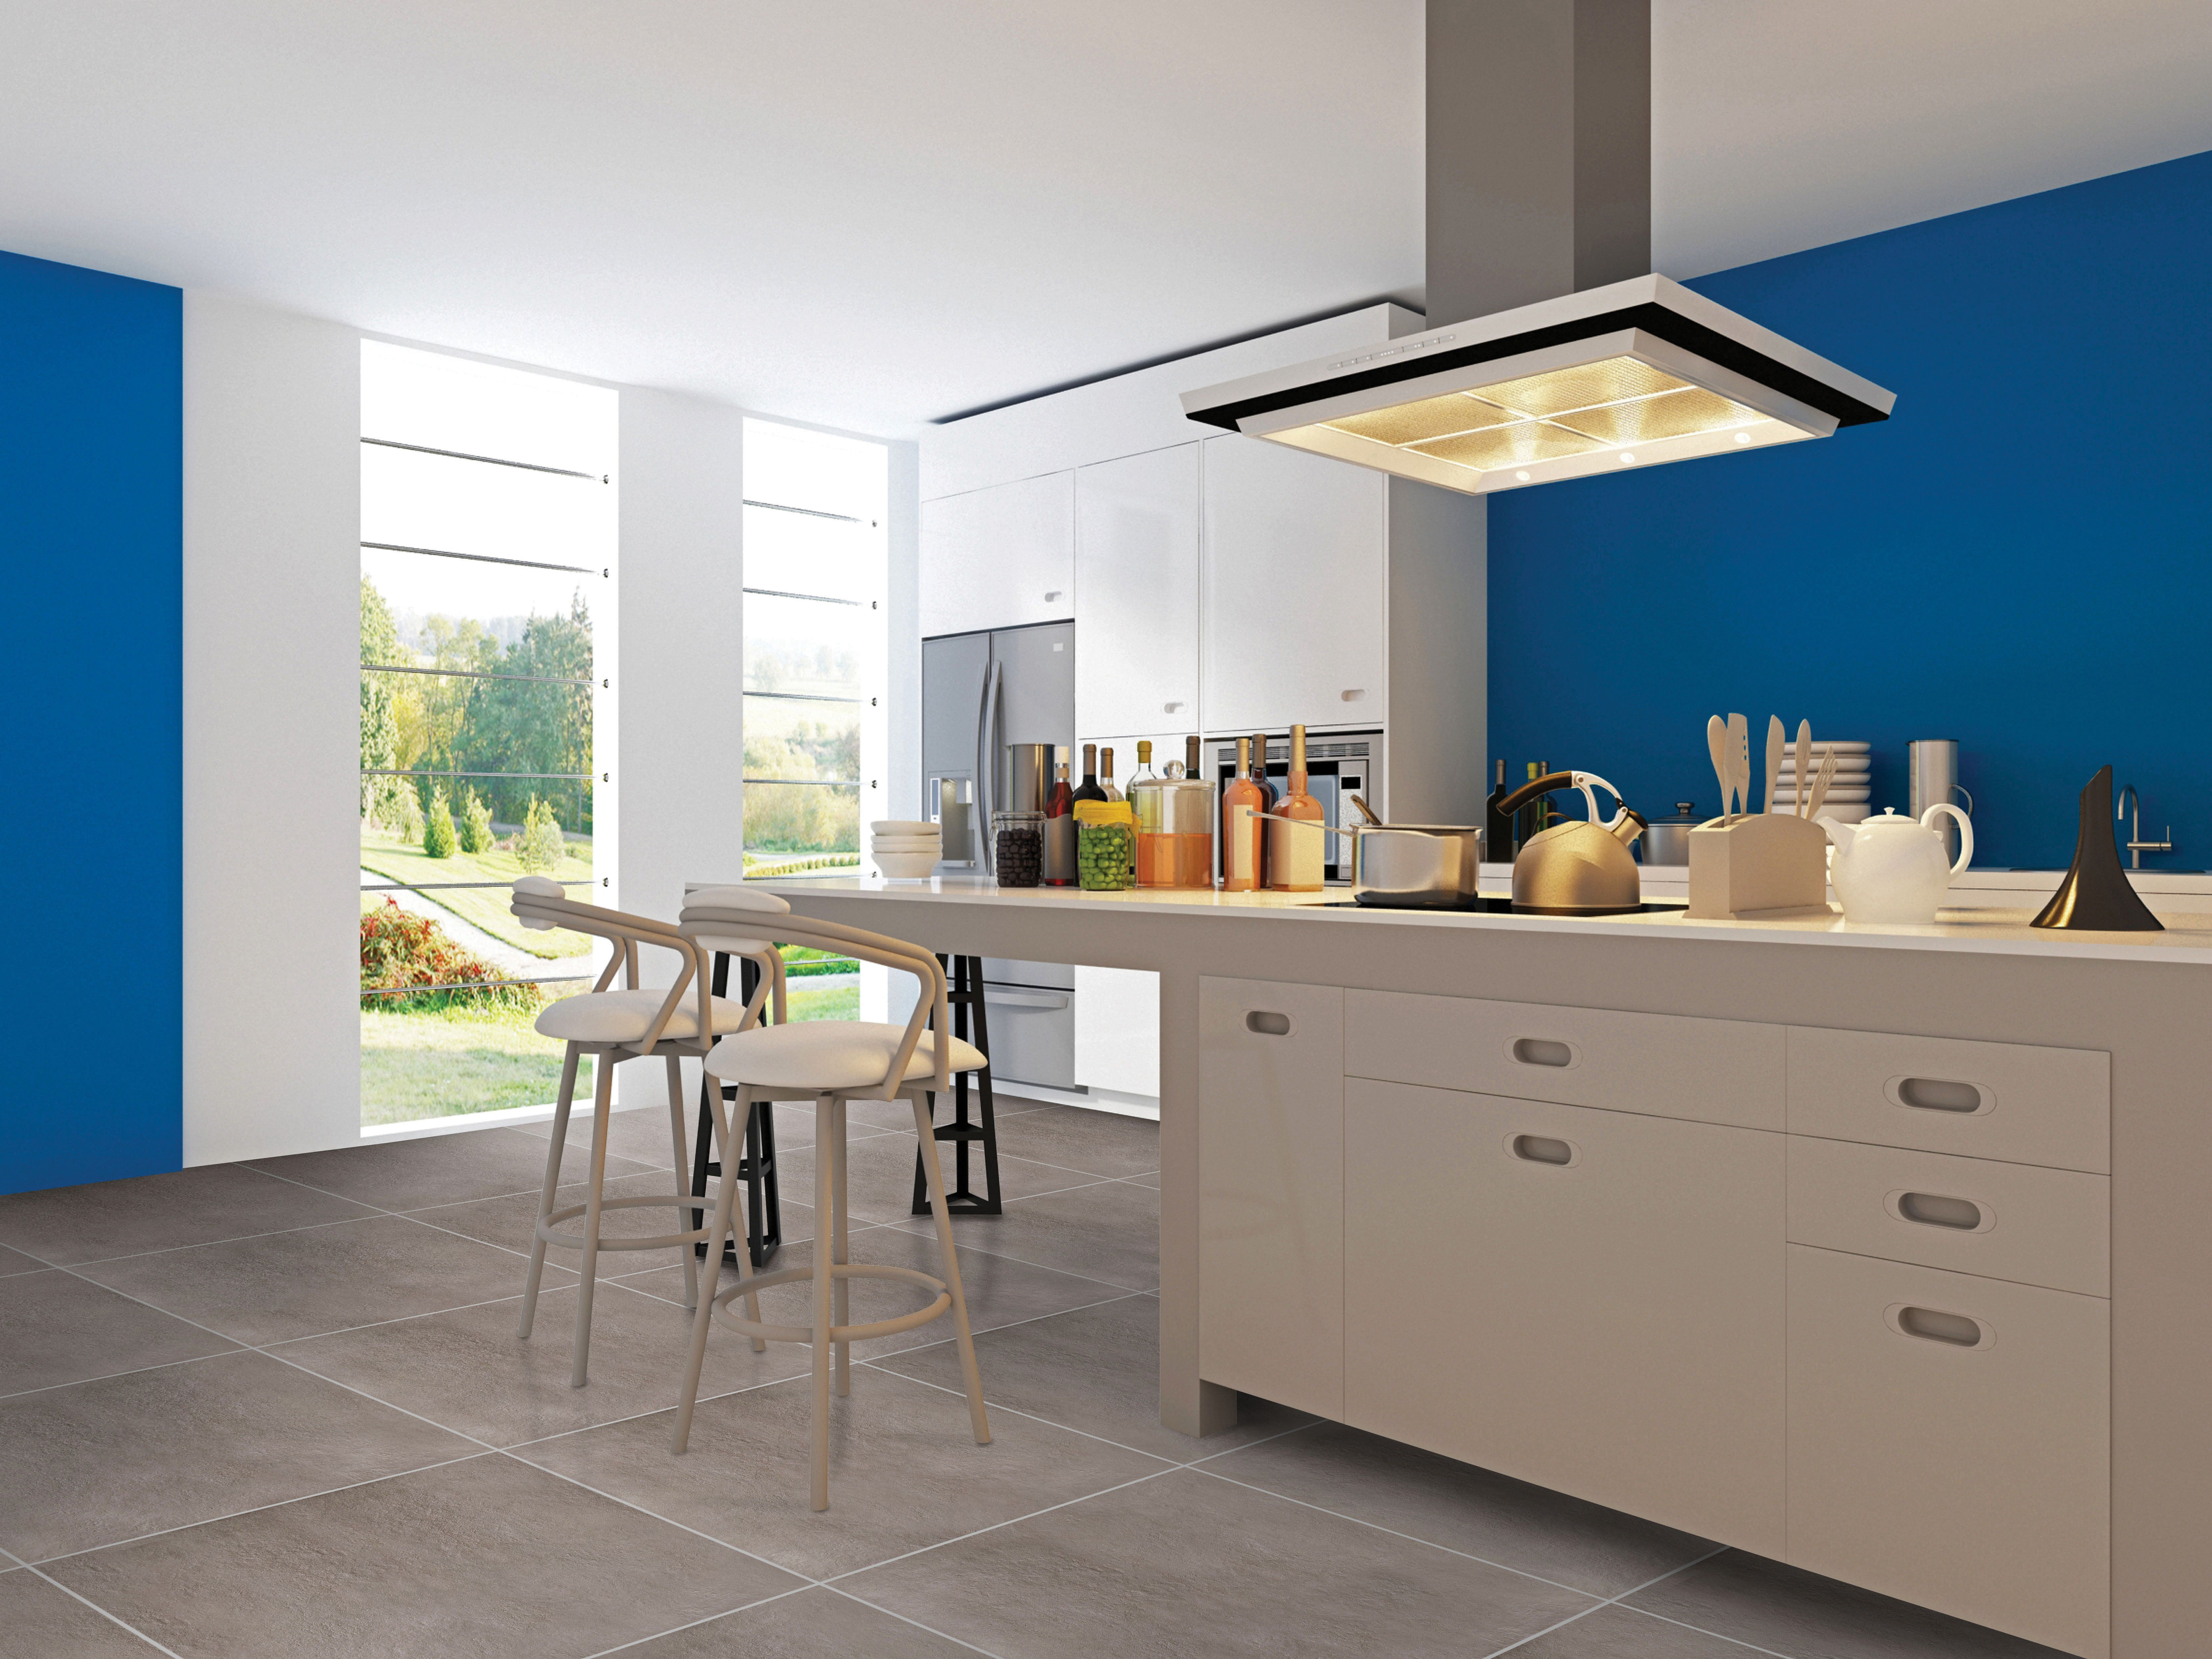 burn with effect nicest peronda tile floors walls tiles foresta floor and in gallery wood for porcelain view